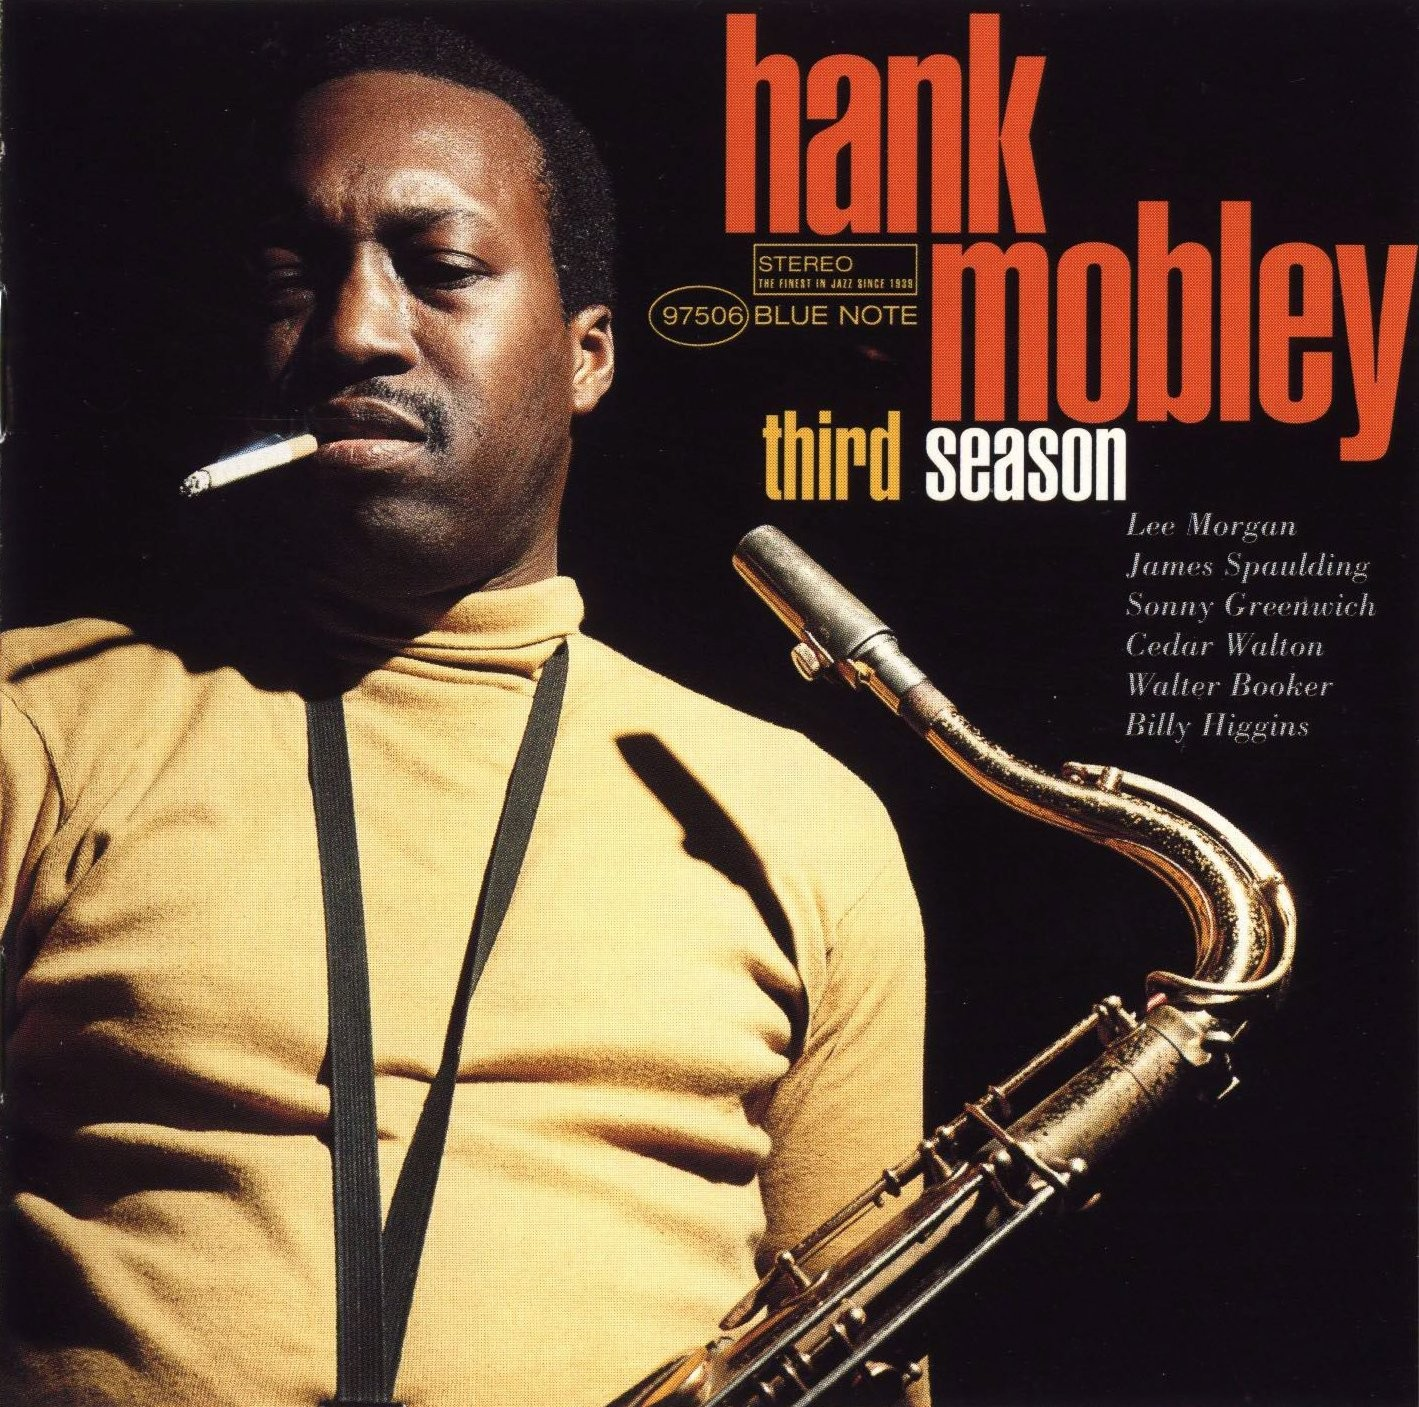 hank mobley - third season (album art)